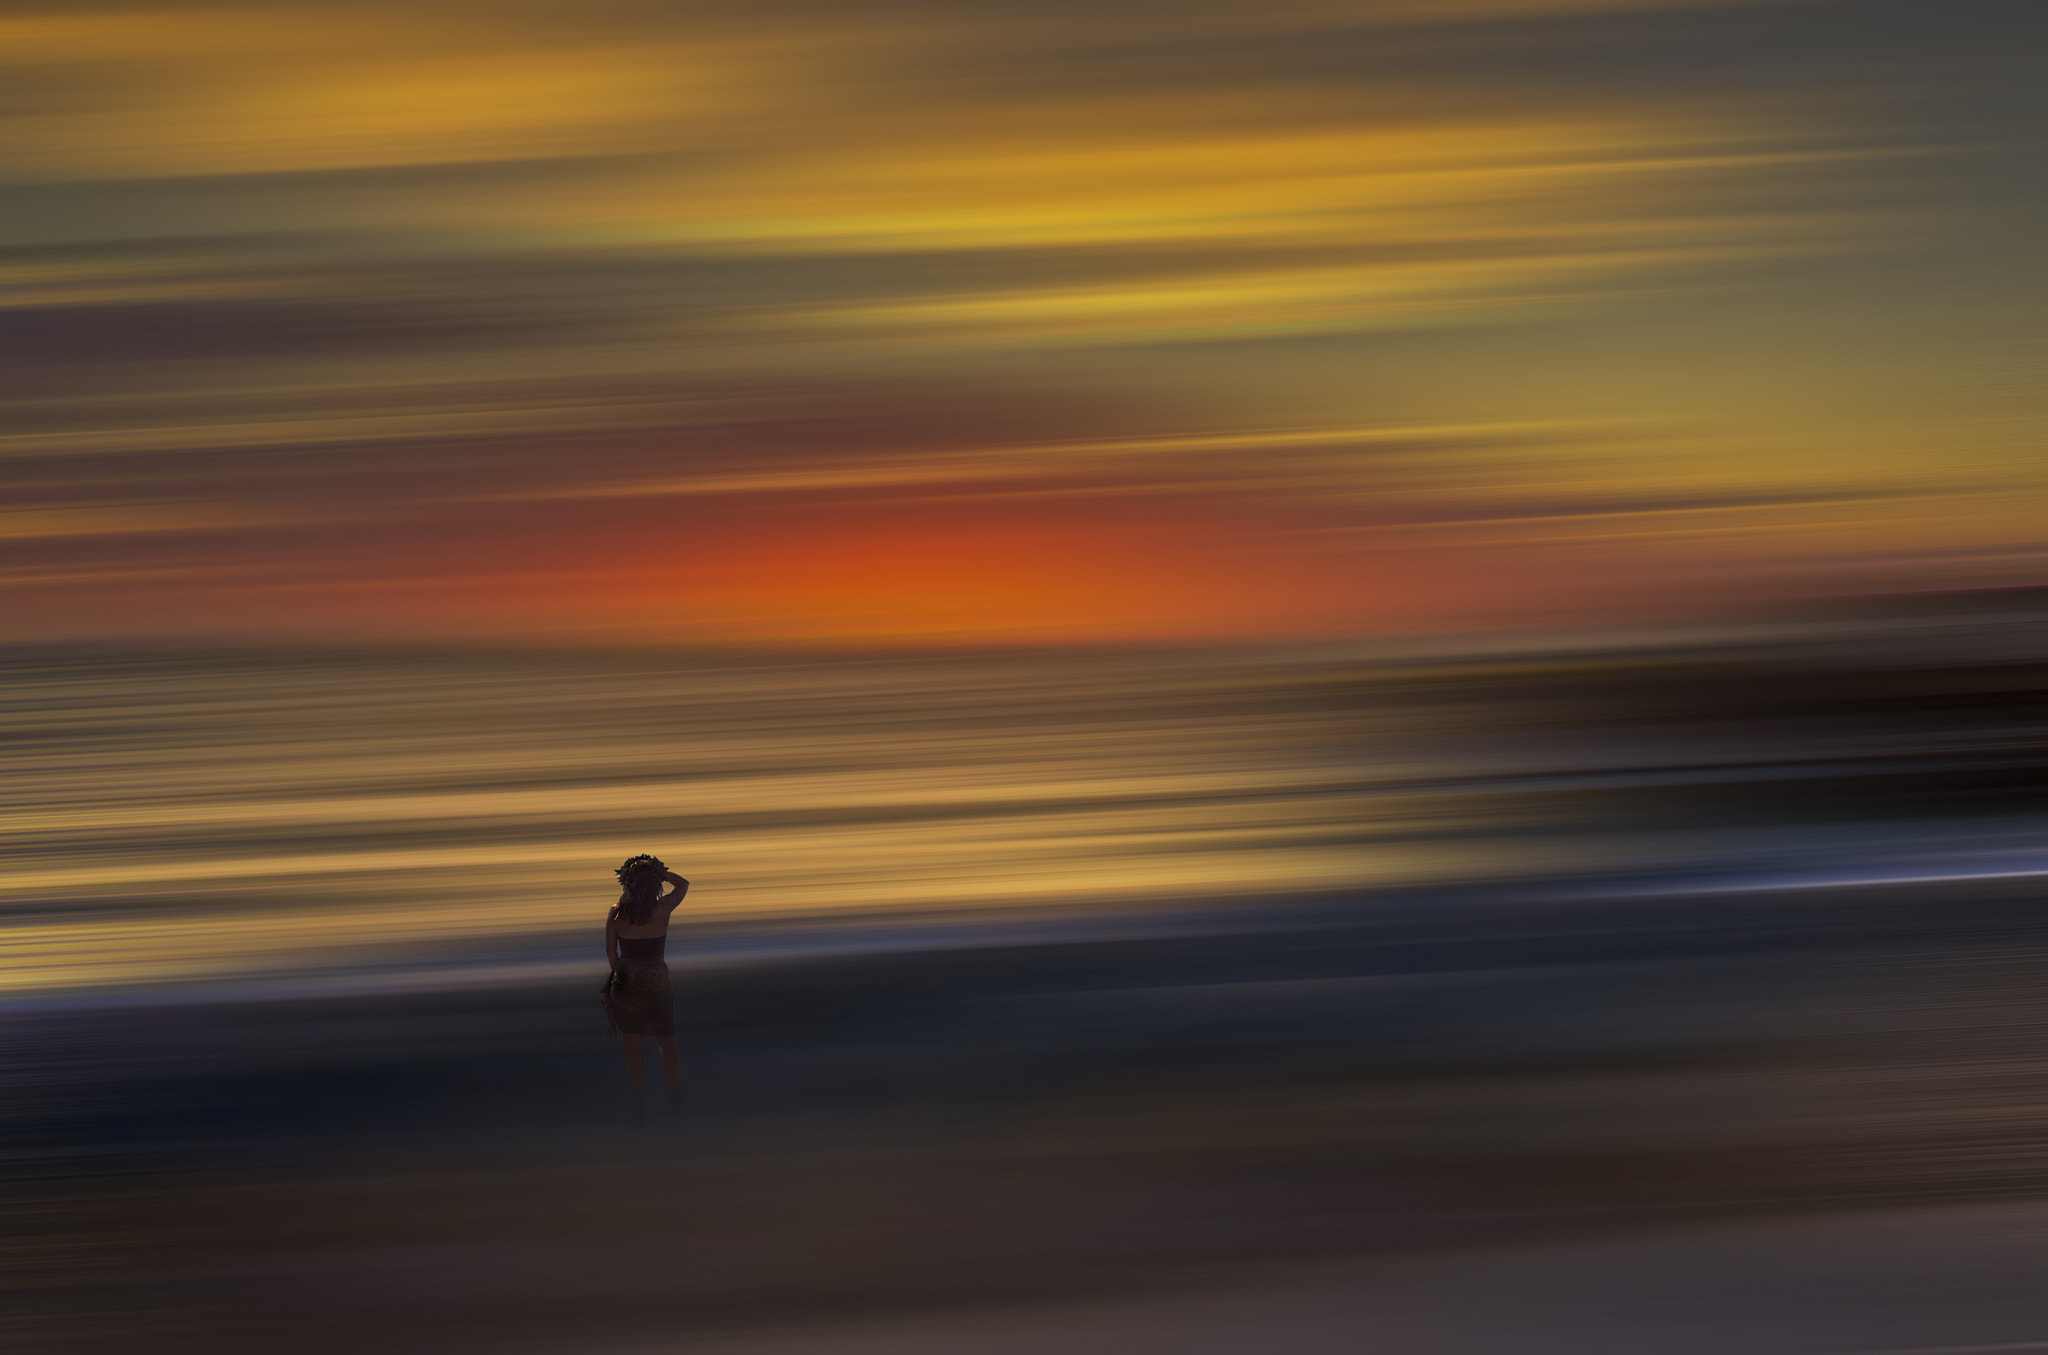 Photograph Longing by Mark Patton on 500px